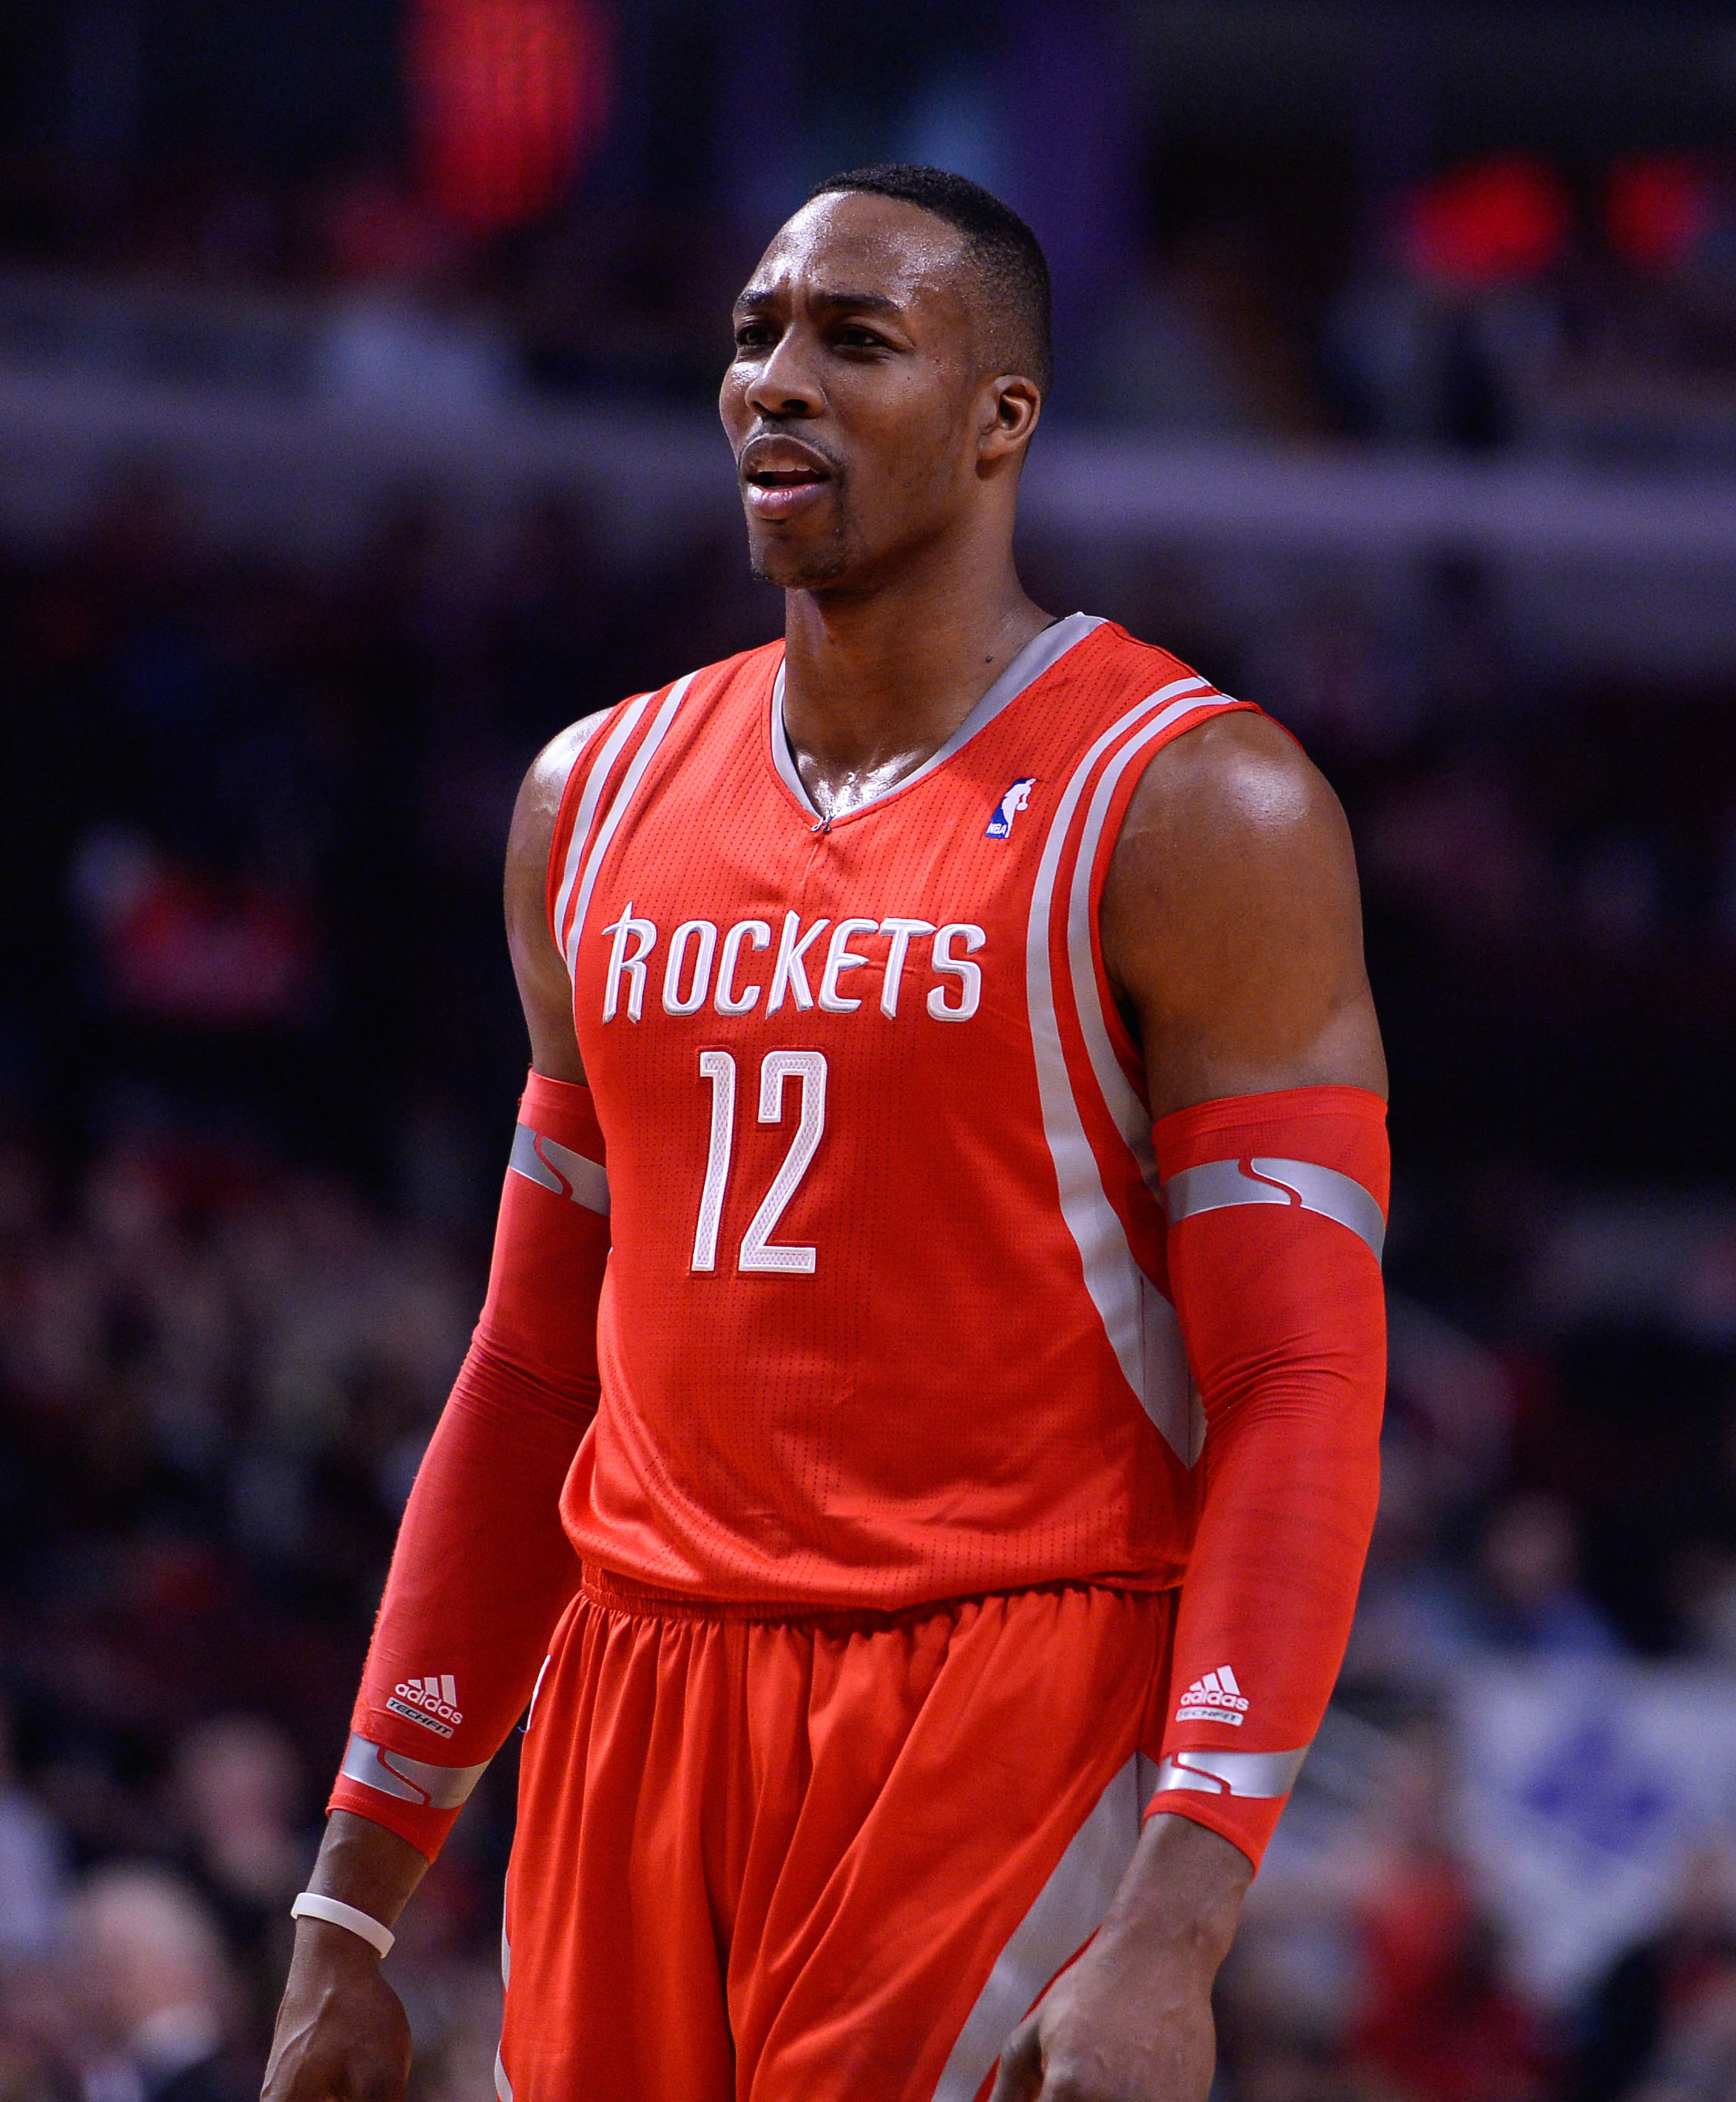 Dwight Howard out against the Clippers on Saturday, per report